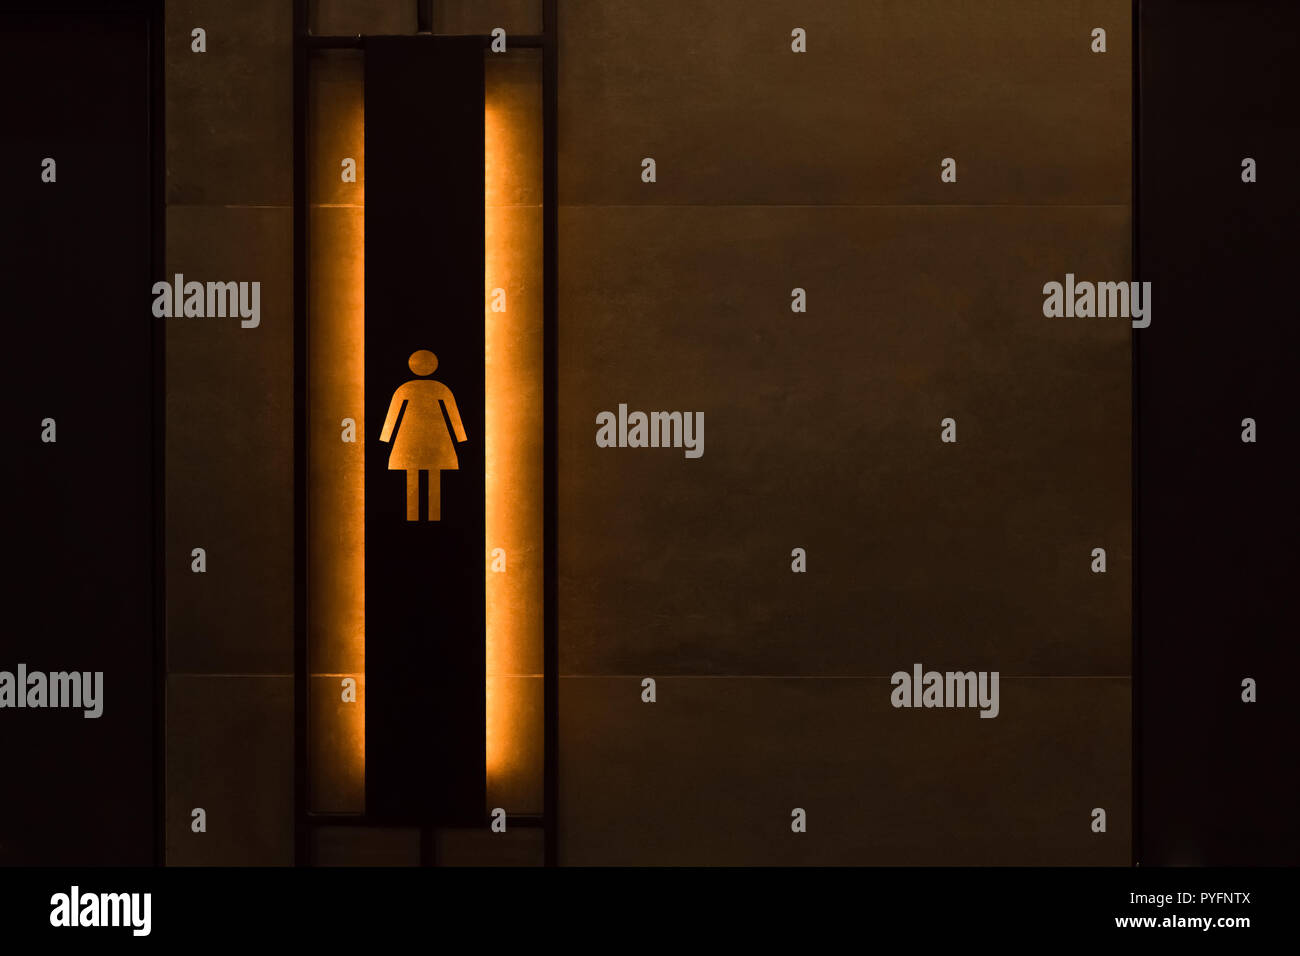 Female restroom sign. Restroom signs in public place. Important signs and symbols concept. Simple sign of WC. Restroom concept. Restroom sign on a toilet door. - Stock Image